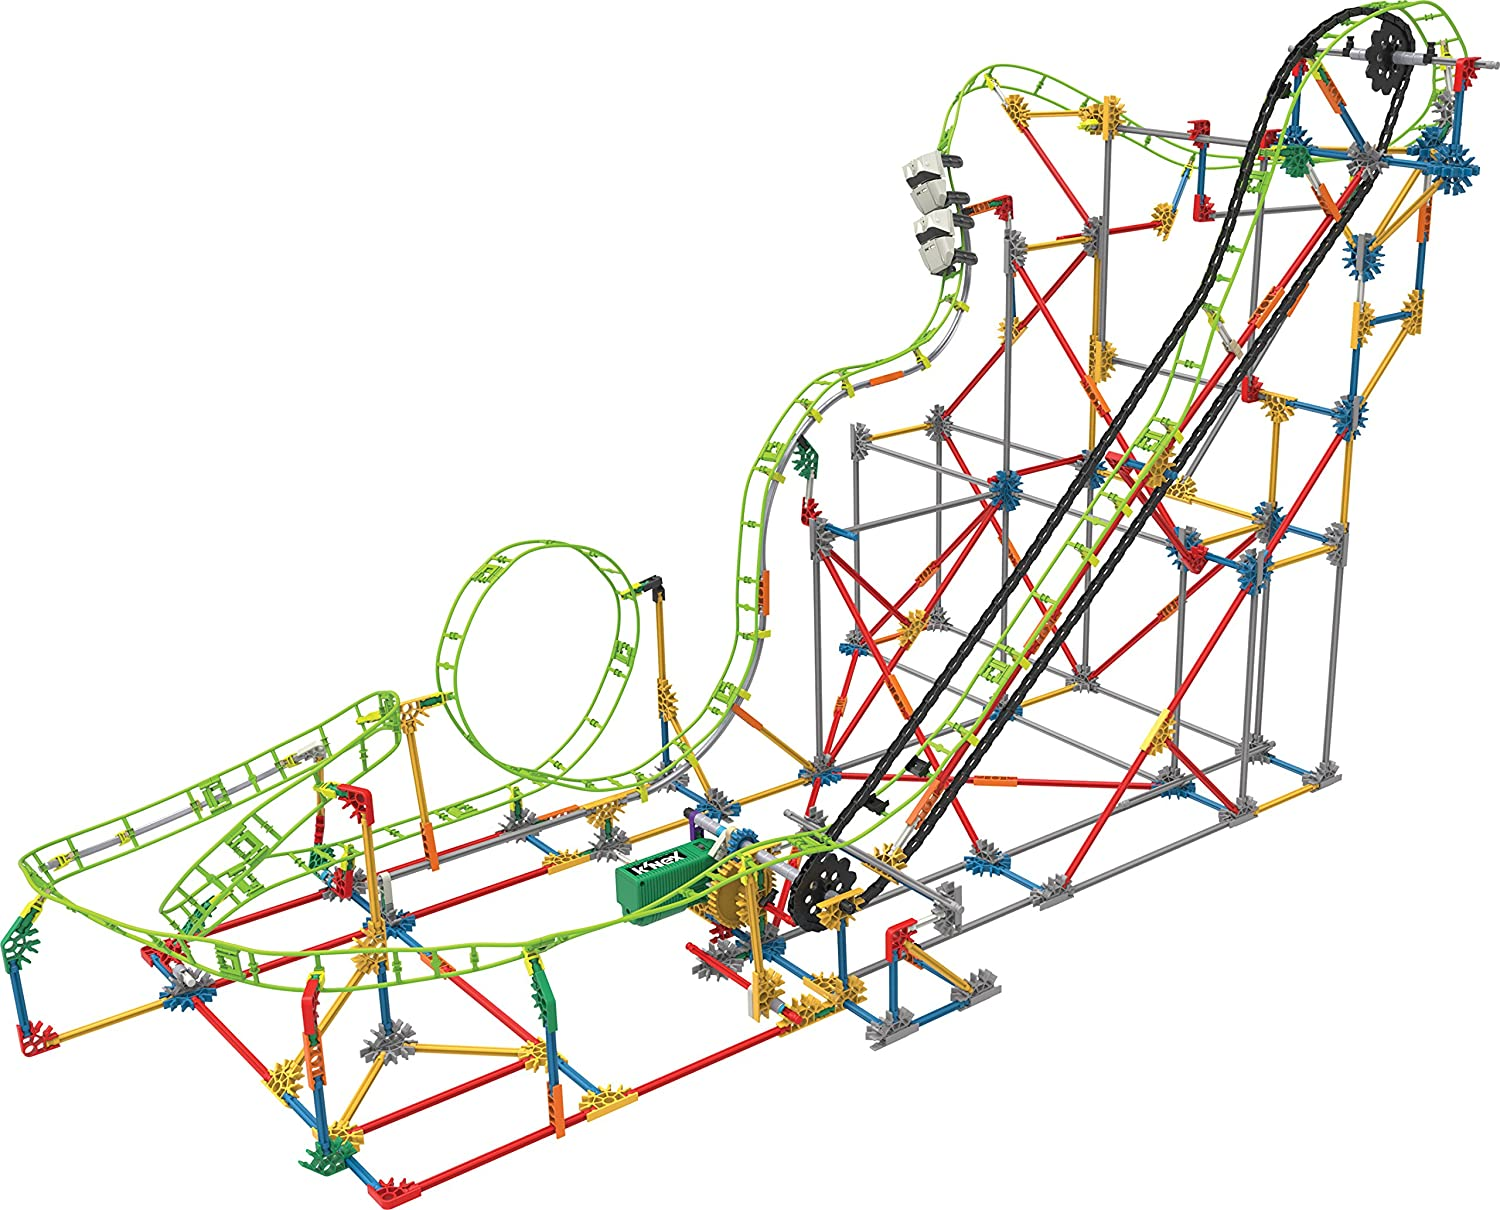 Buy Knex Thrill Rides Double Doom Roller Coaster Building Set Rollercoaster Diagram 891 Pieces Ages 9 Engineering Educational Toy Online At Low Prices In India Amazon